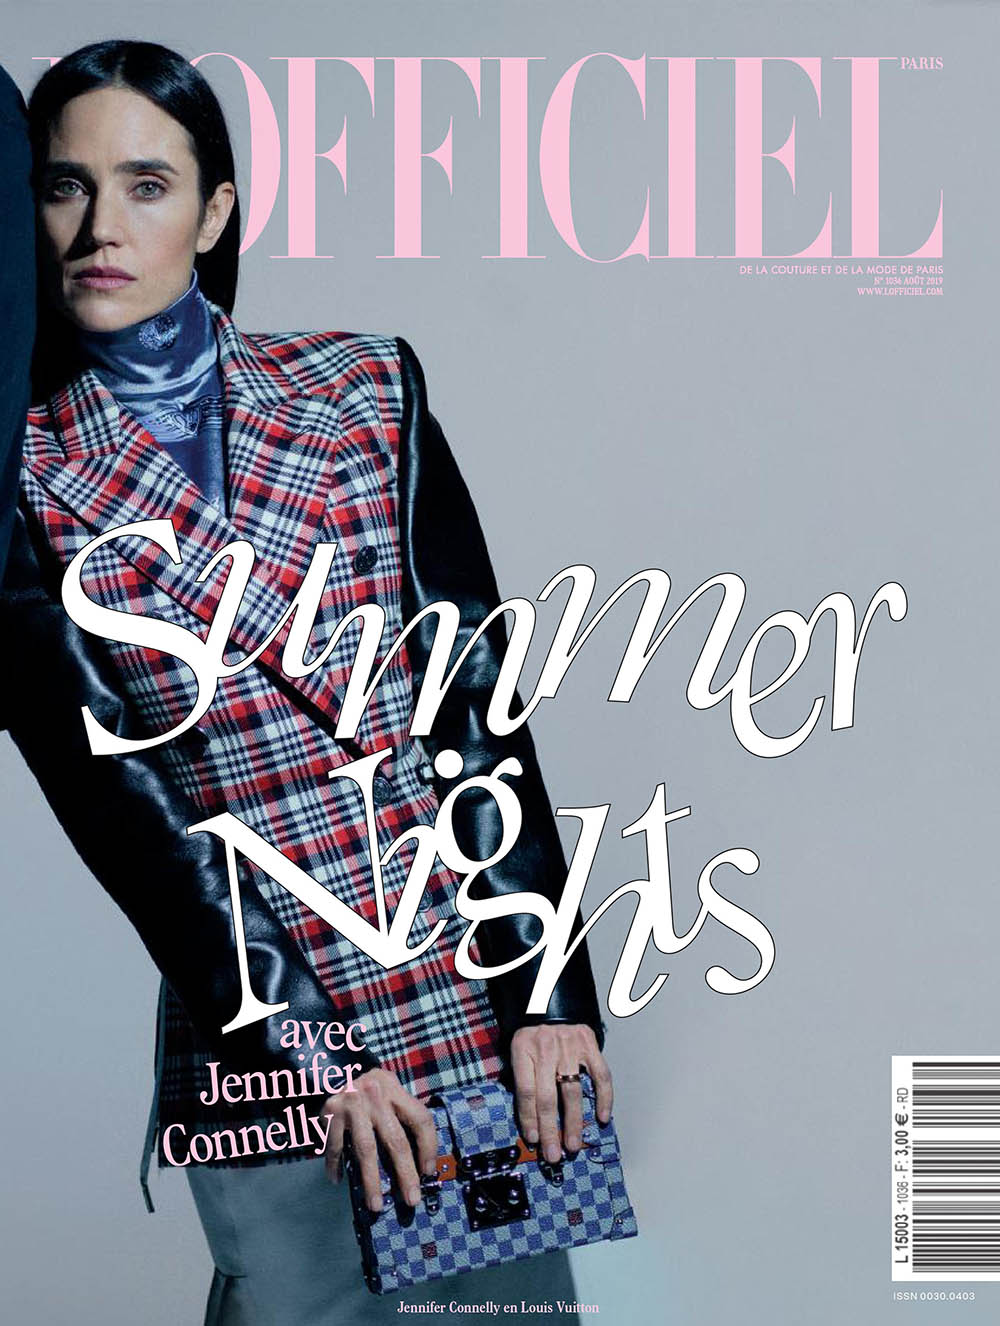 Jennifer Connelly covers L'Officiel Paris August 2019 by Marili Andre